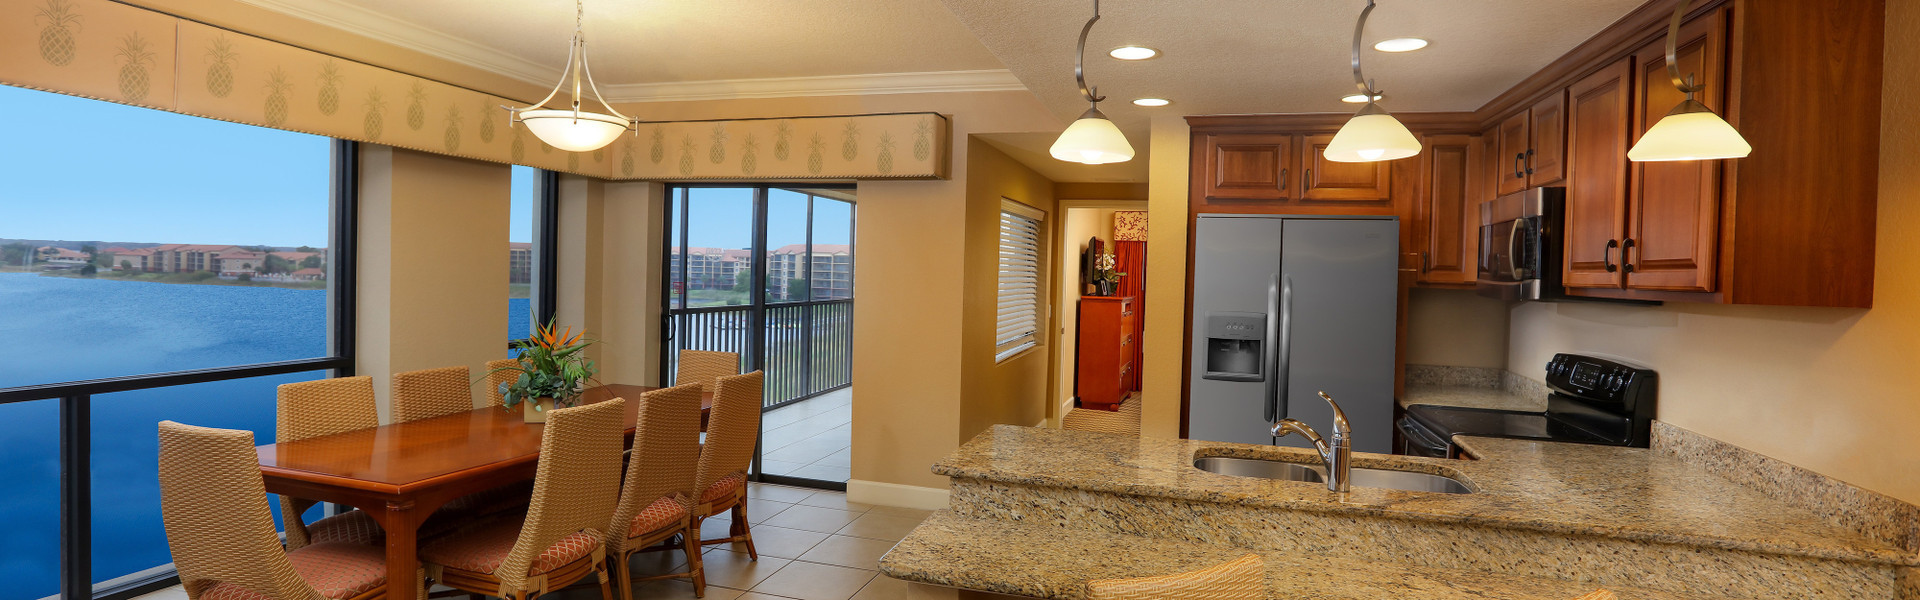 Luxury accommodations at affordable prices near Orlando's favorite theme parks and attractions | Westgate Lakes Resort